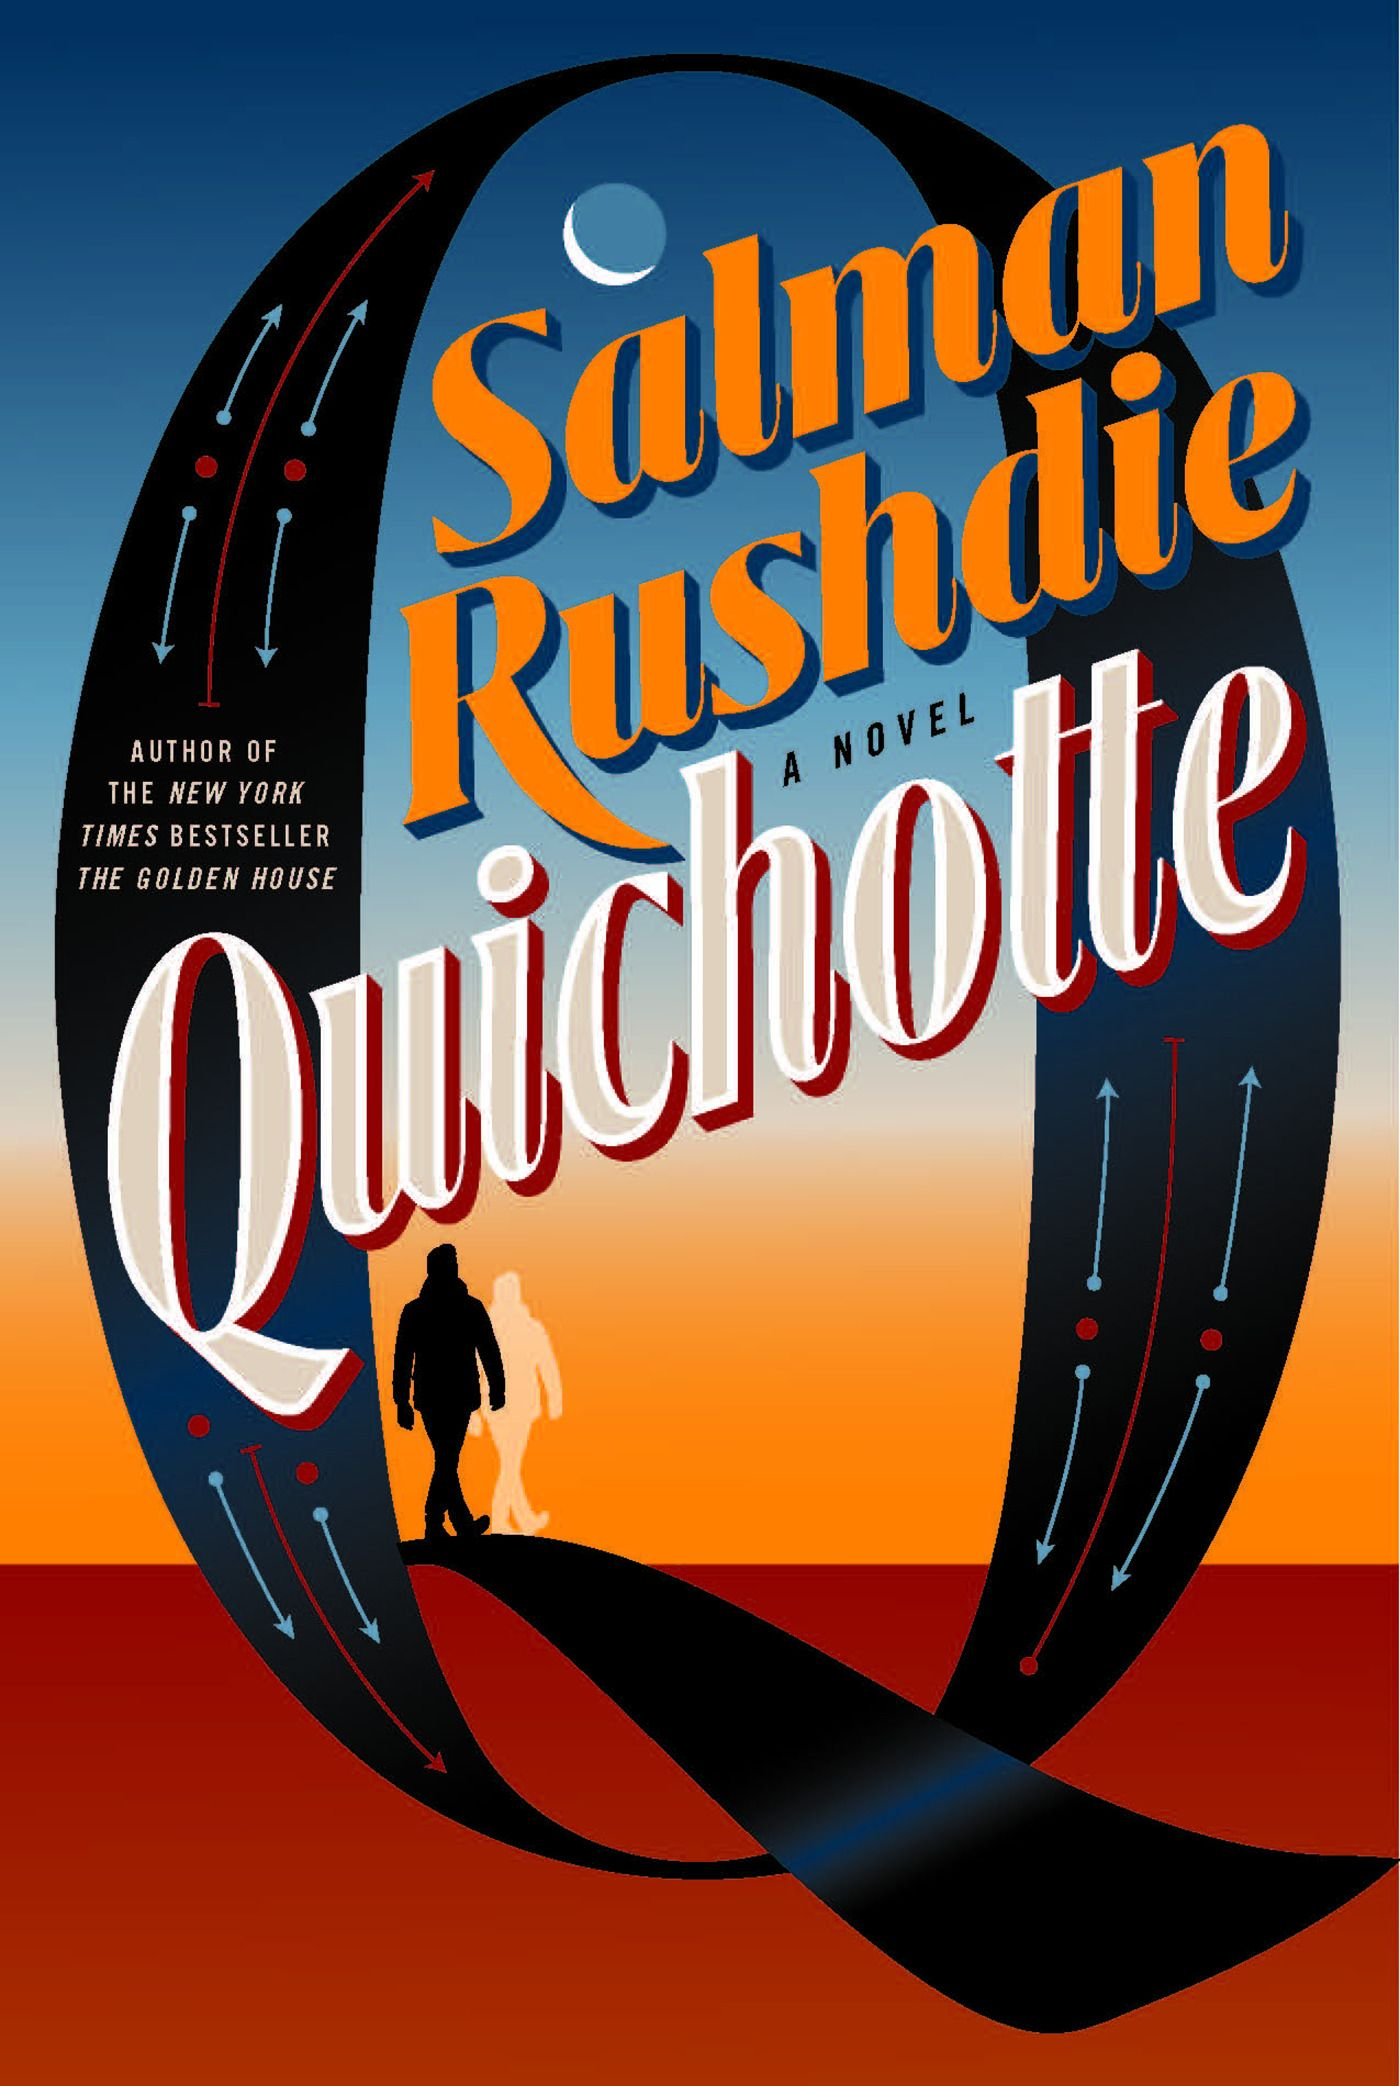 Quichotte - This one seems like it's a story about a quirky MC in the quest for love and family. In as way, could possibly be similar to The Rosie Project (which I loved) as. Sam DuChamp, mediocre spy thriller writer created Quichotte, a saleman obsessed with TV and who falls in love with a TV star. He decided to drive across America to prove he's worthy for her. While Sam also has equal challenges of his own.